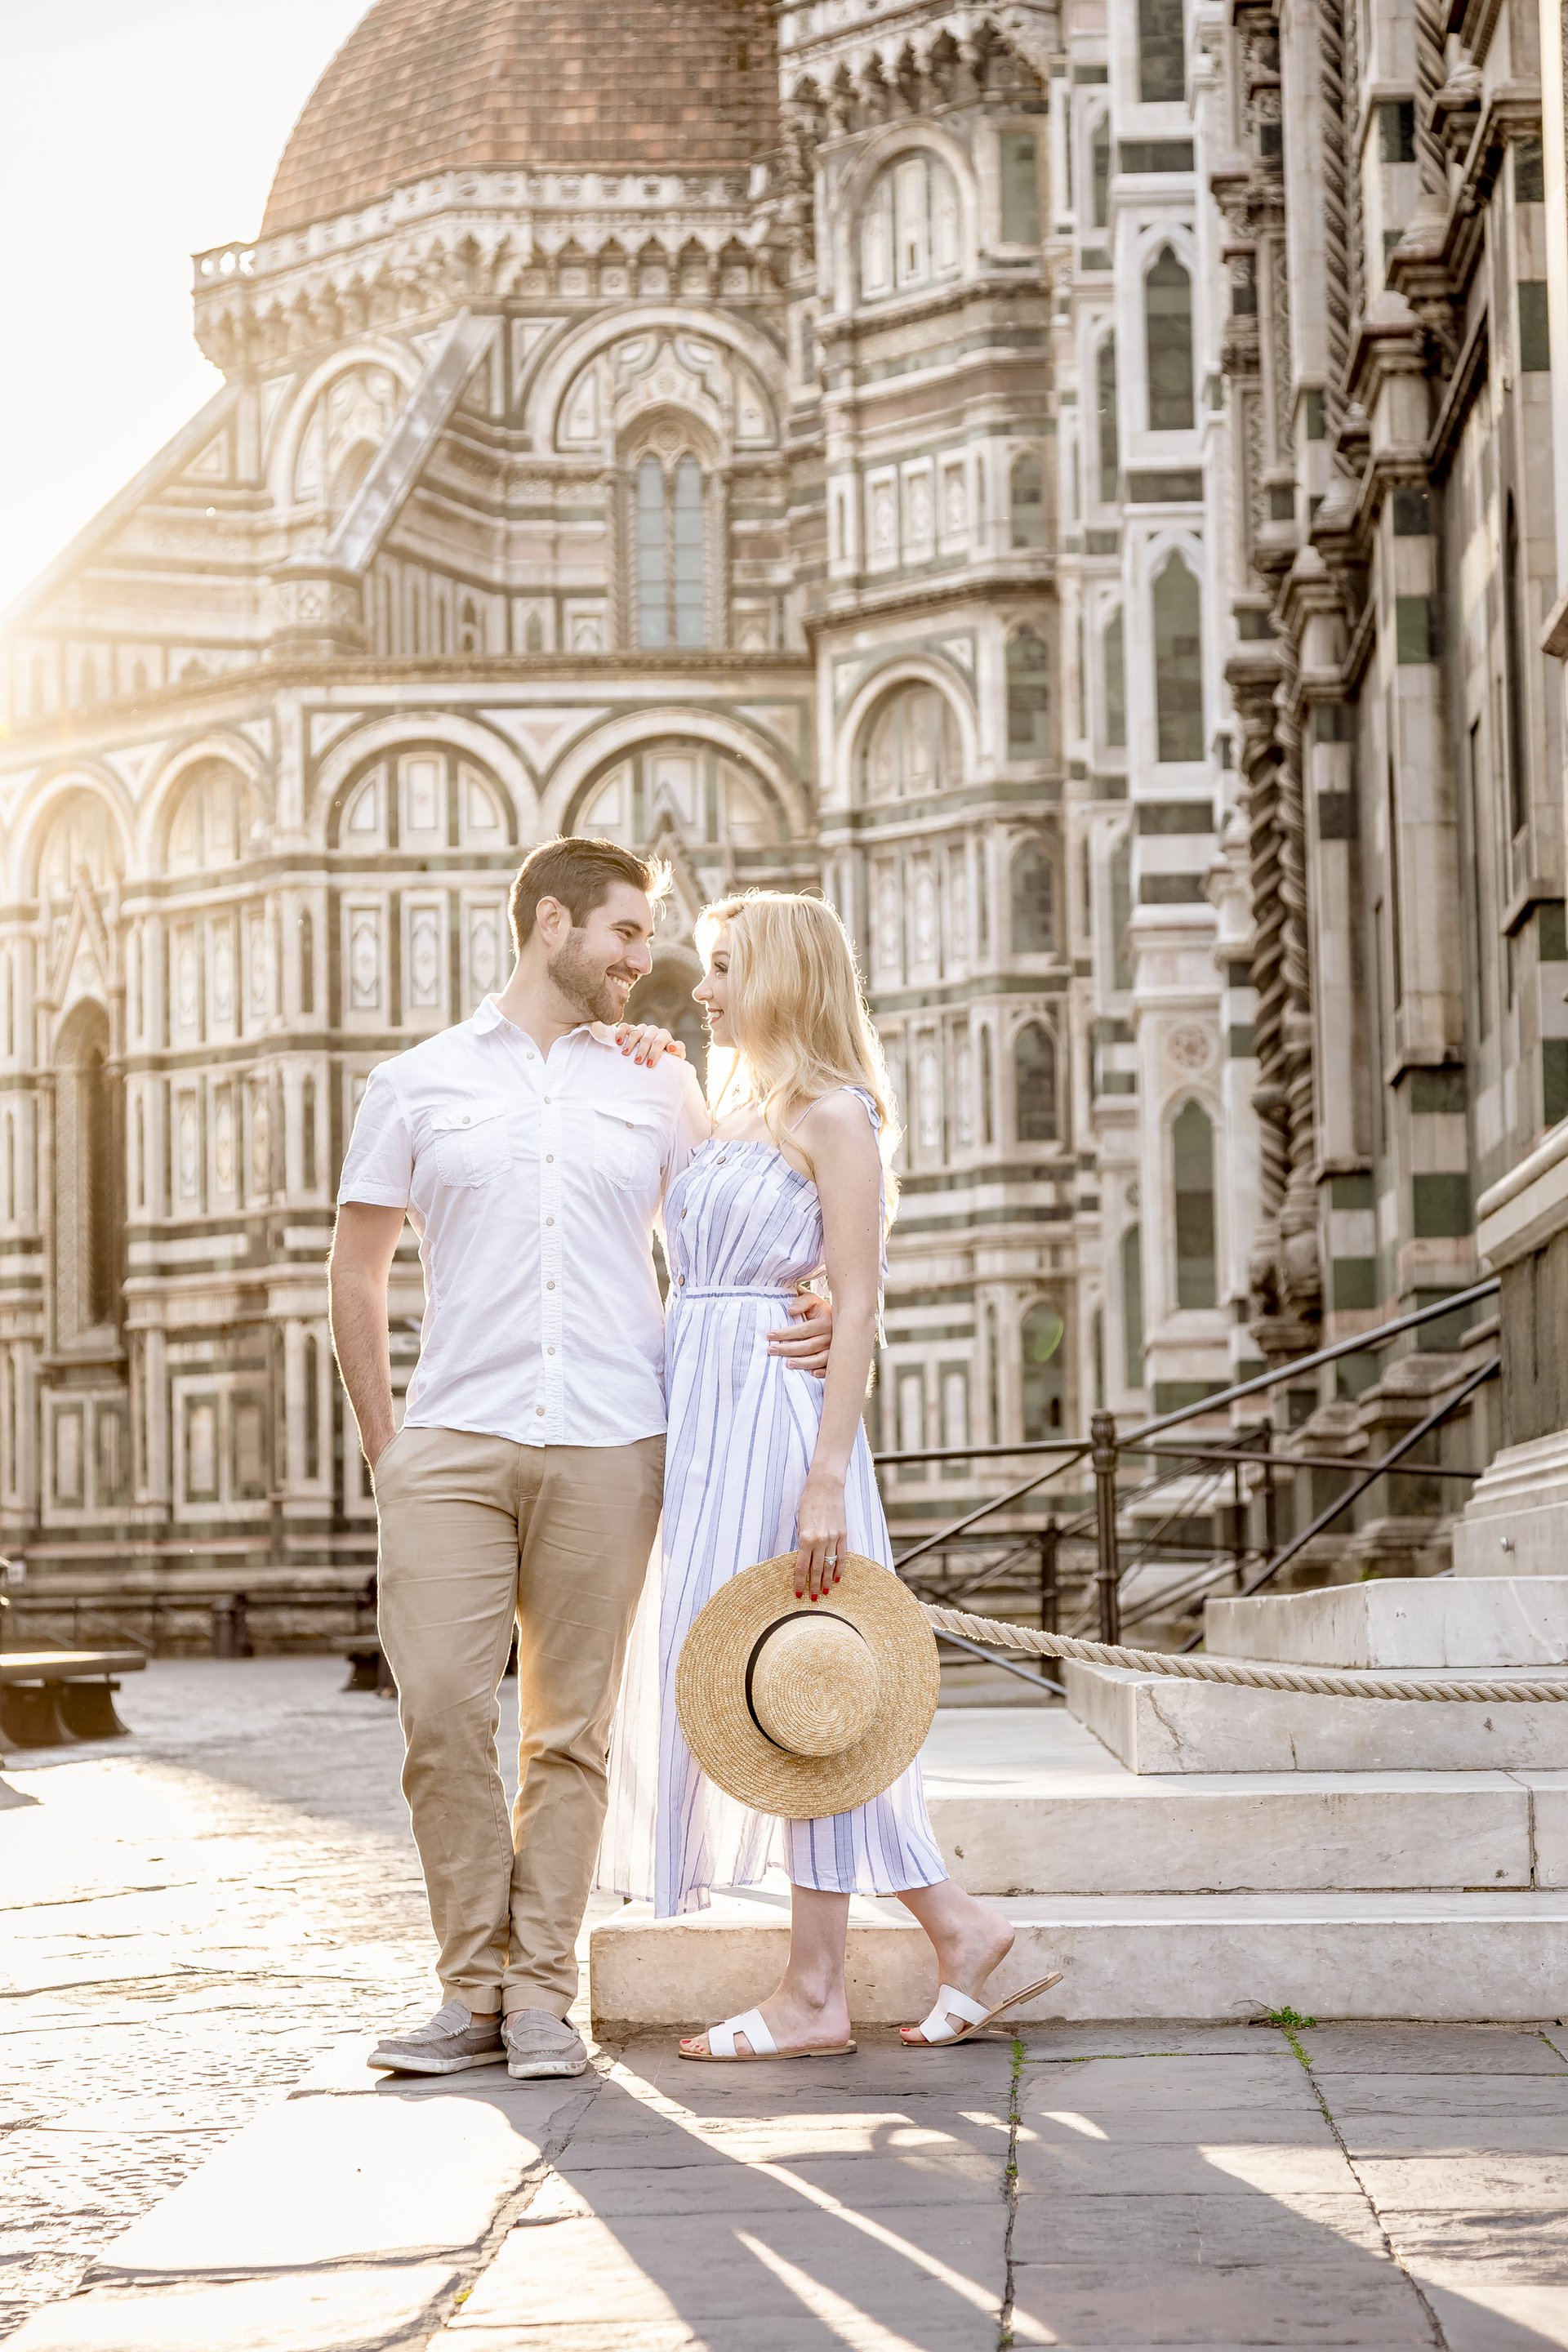 Florence-Italy-travel-story-Flytographer-10